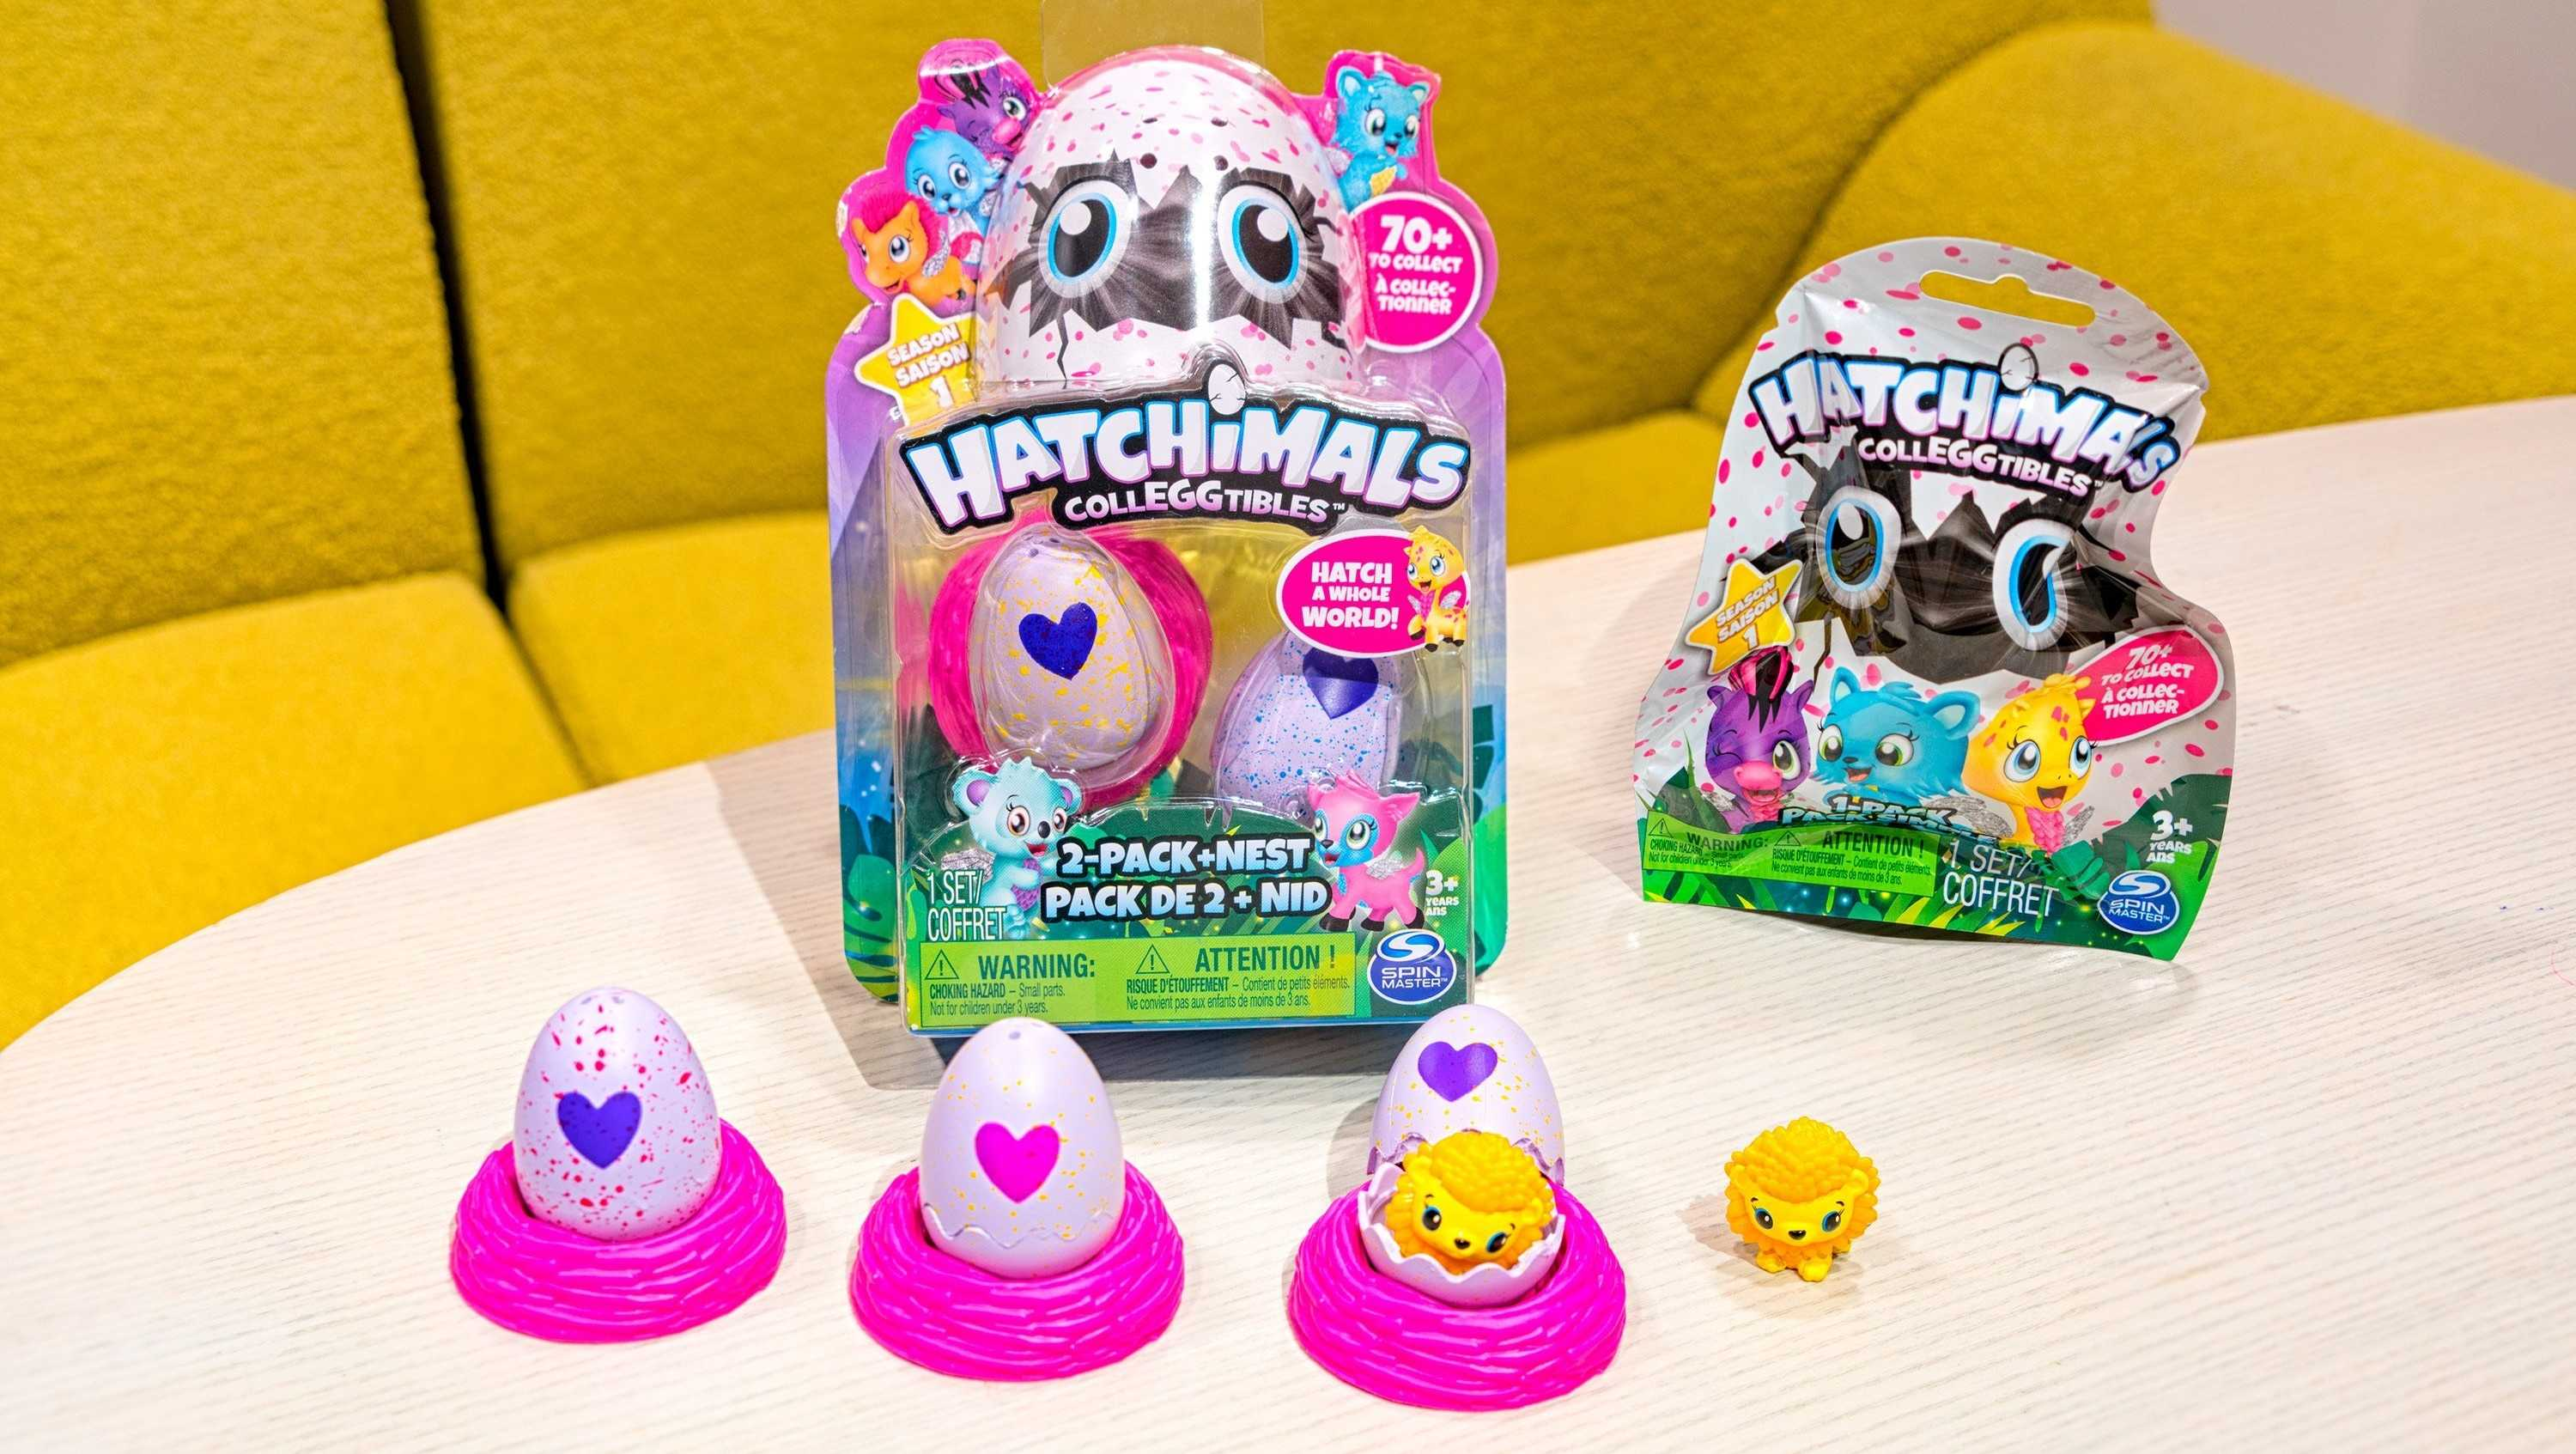 Hatchimals Colleggtibles include 70 mini plastic creatures that live inside a mini egg